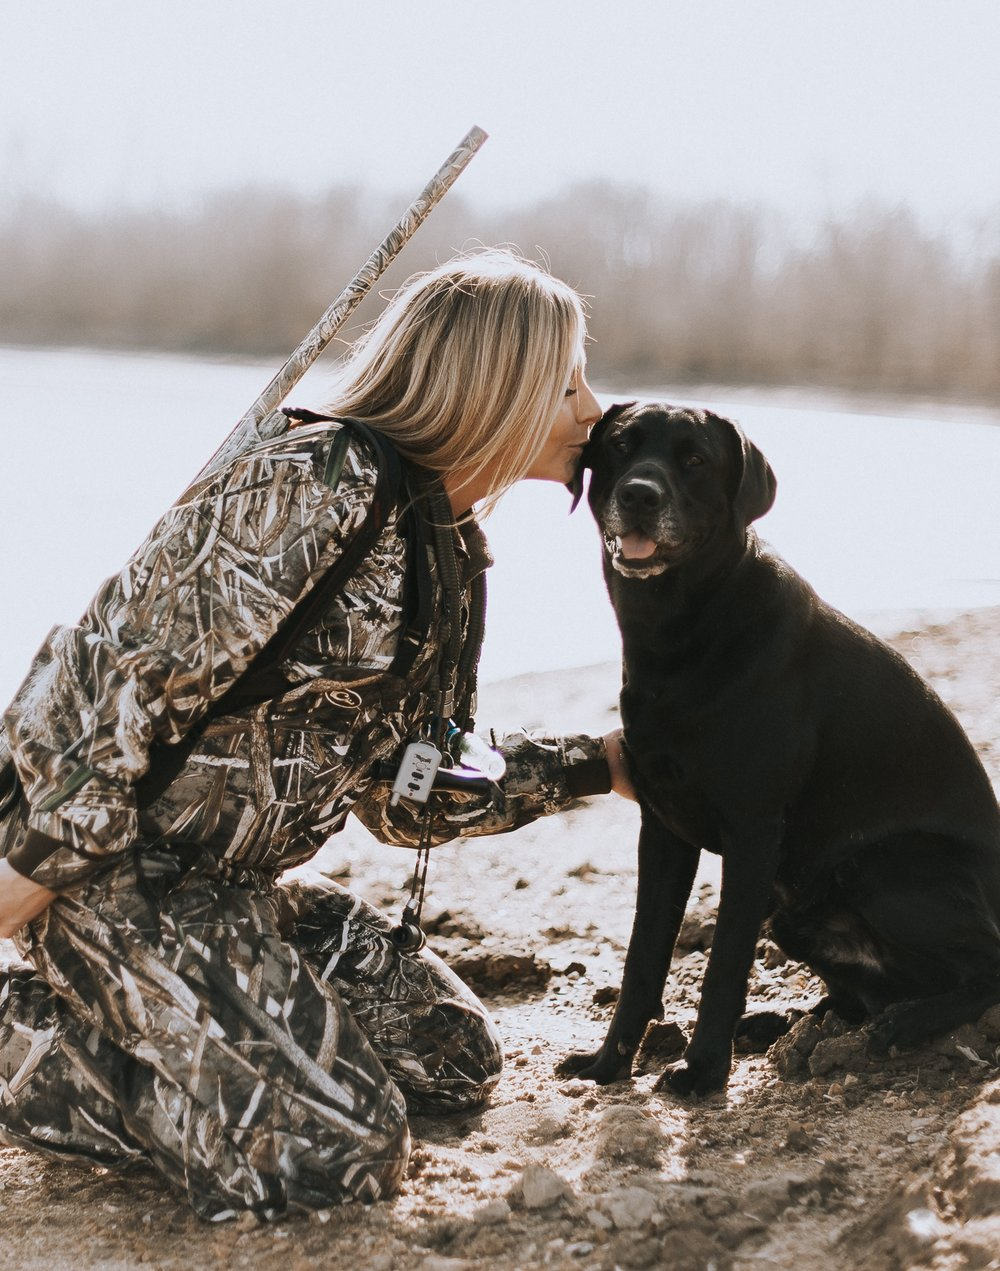 """Kate Galati - """"I couldn't be more thankful to have had OV photography take some amazing pictures of me and my black lab. 💗 The love and passion that Vasva has while taking my photos was amazing. I can't thank you enough!!I highly recommend OV Photography for any special moments you need captured!"""""""